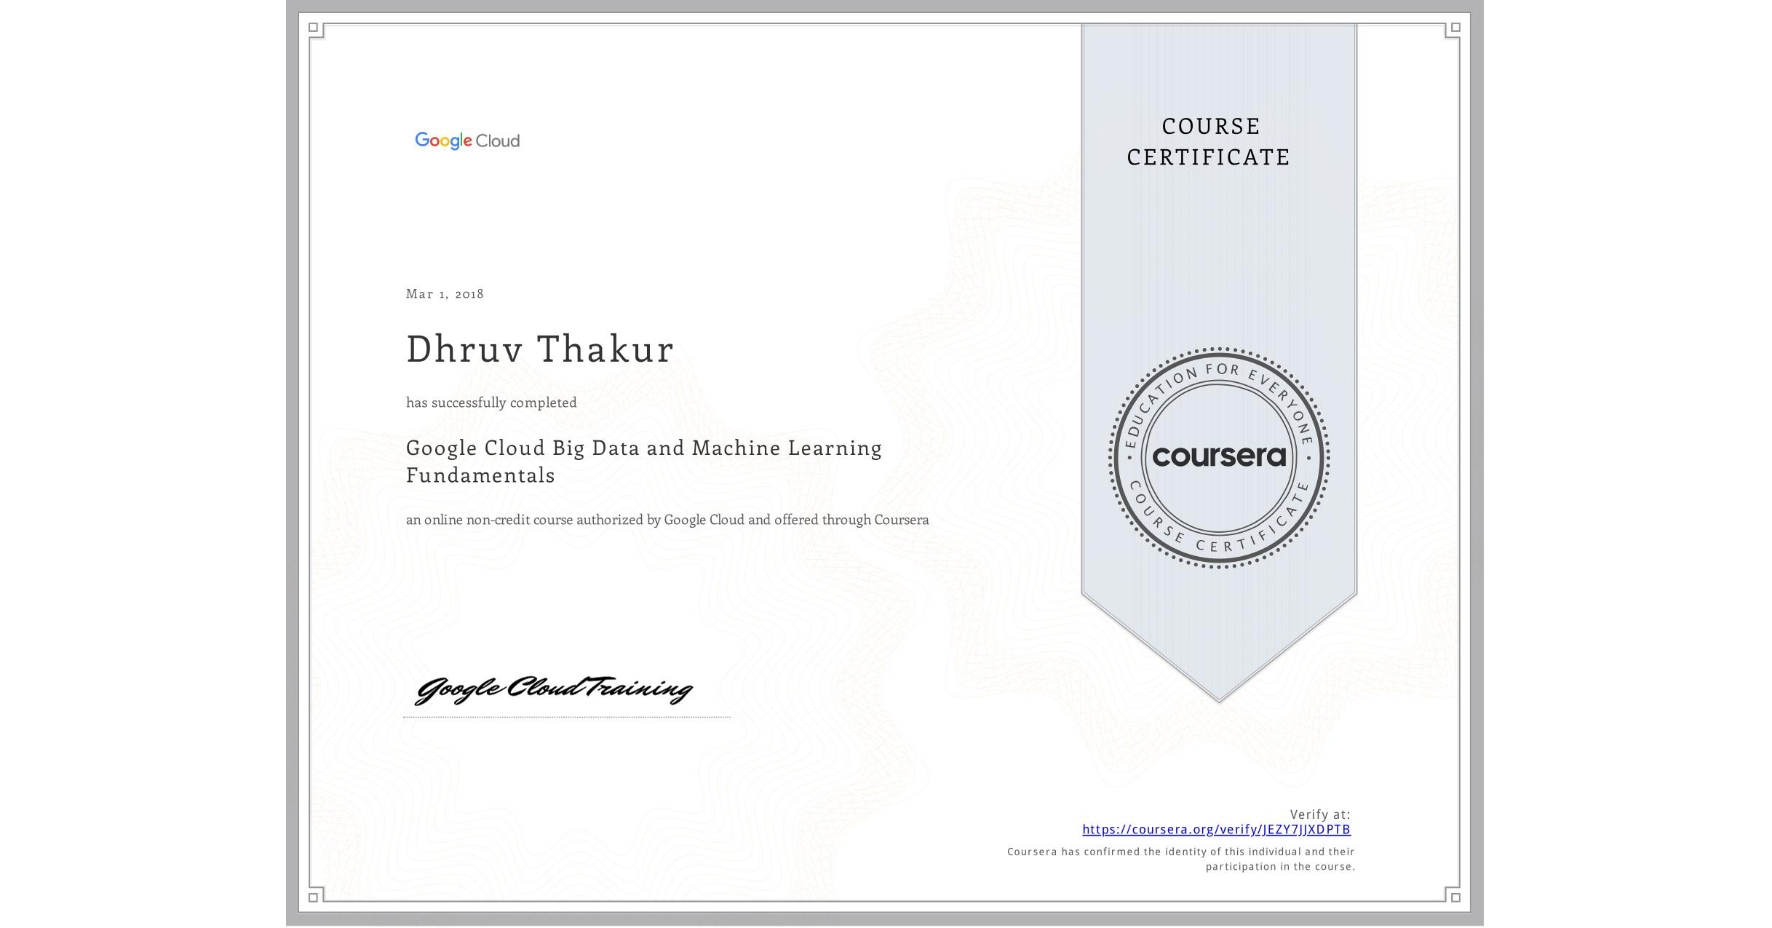 View certificate for Dhruv Thakur, Google Cloud Platform Big Data and Machine Learning Fundamentals, an online non-credit course authorized by Google Cloud and offered through Coursera